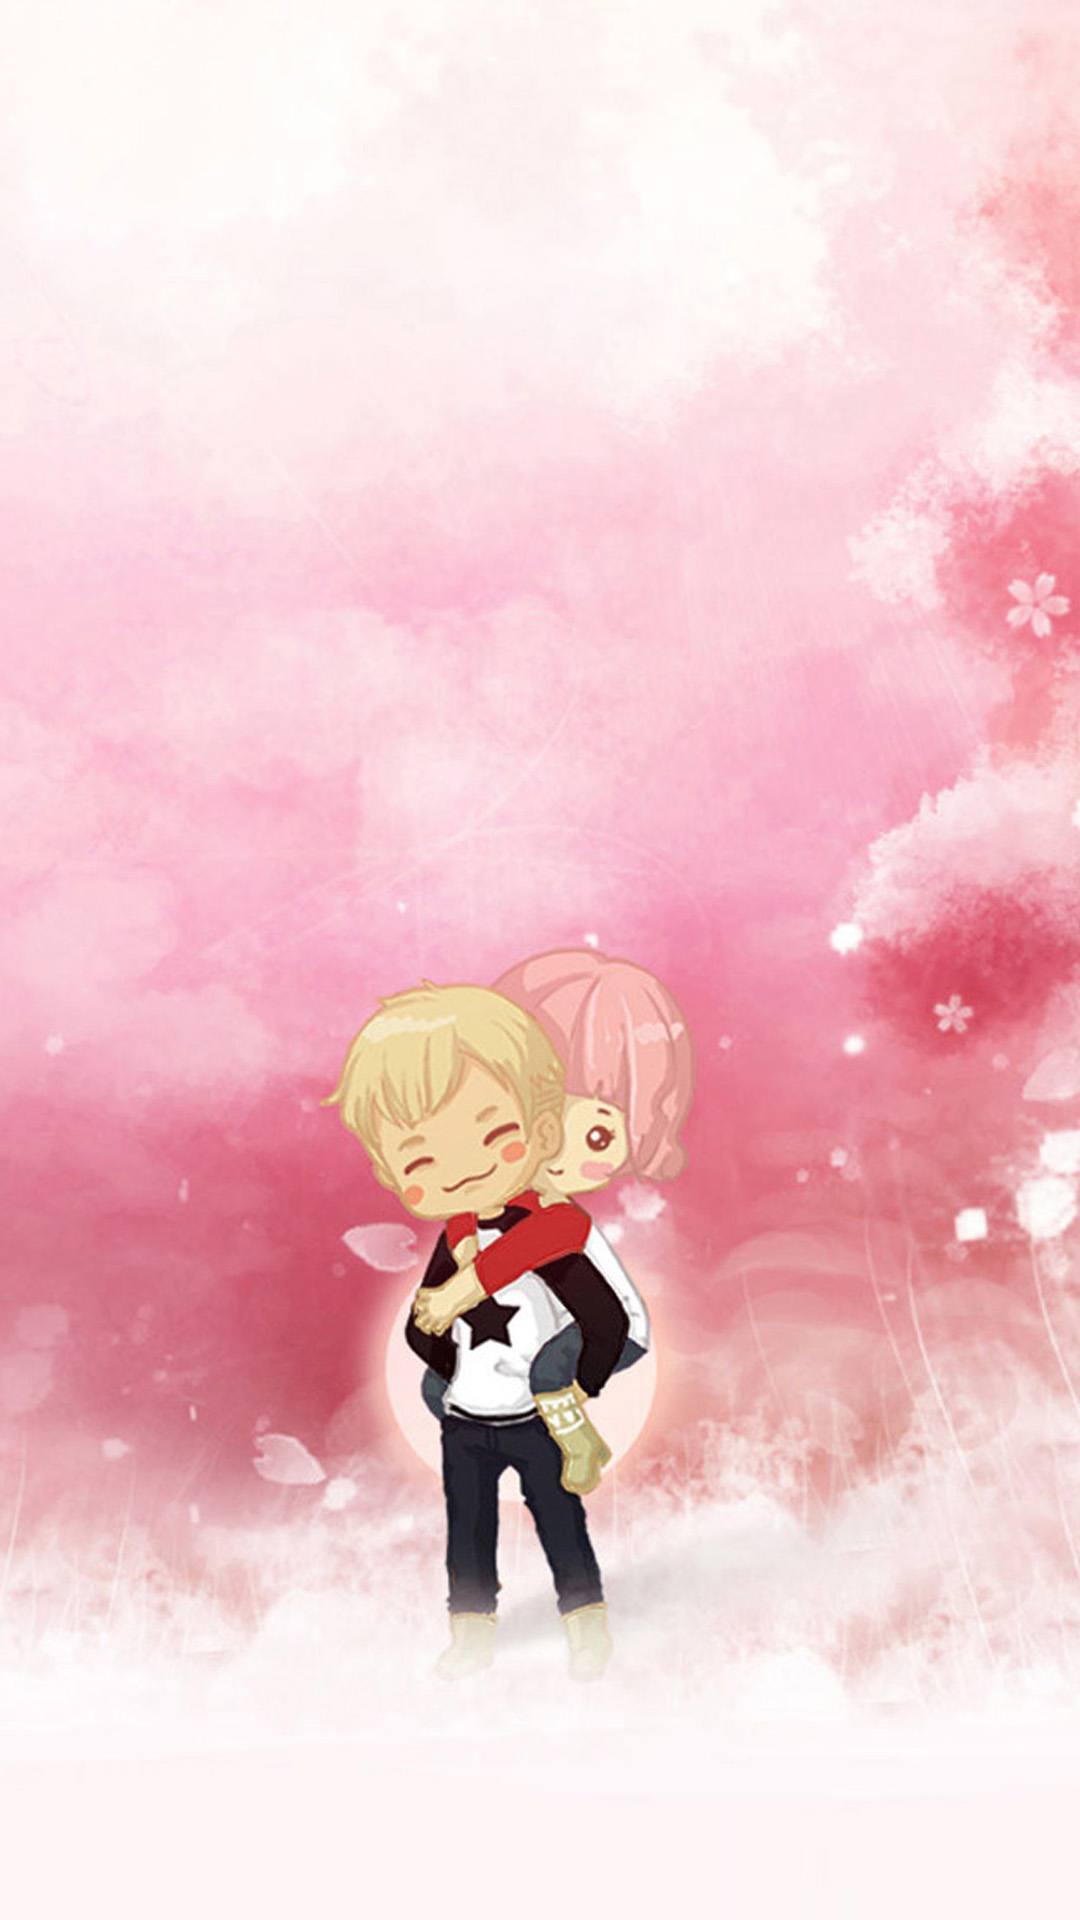 Love couple Wallpaper For Nokia 5233 : cute Love Wallpapers for Mobile - WallpaperSafari